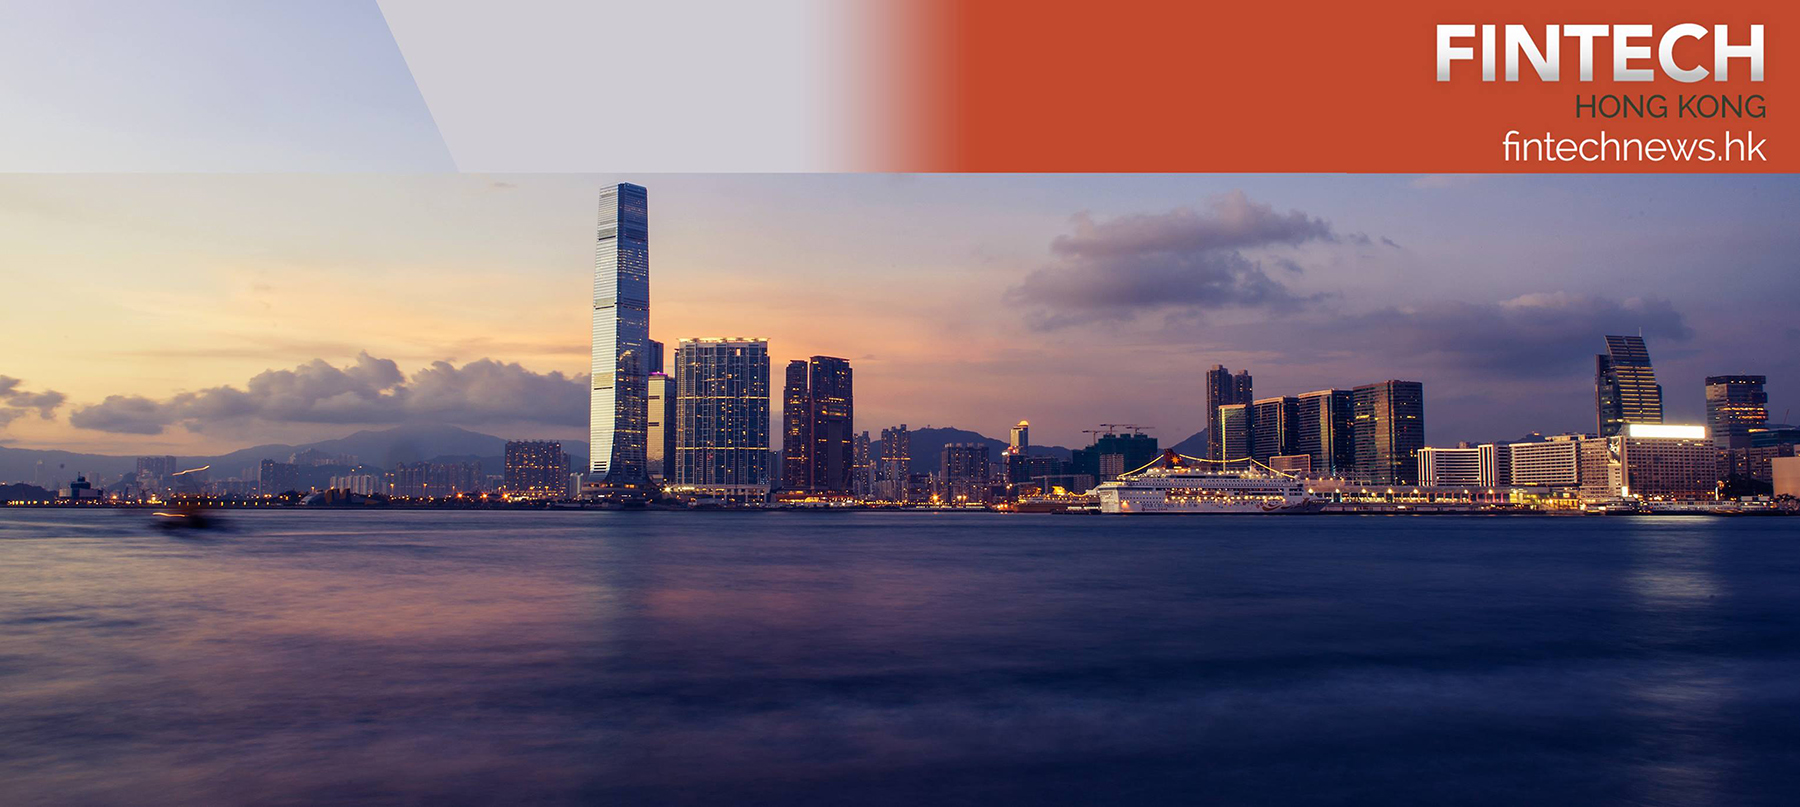 fintech news hong kong china